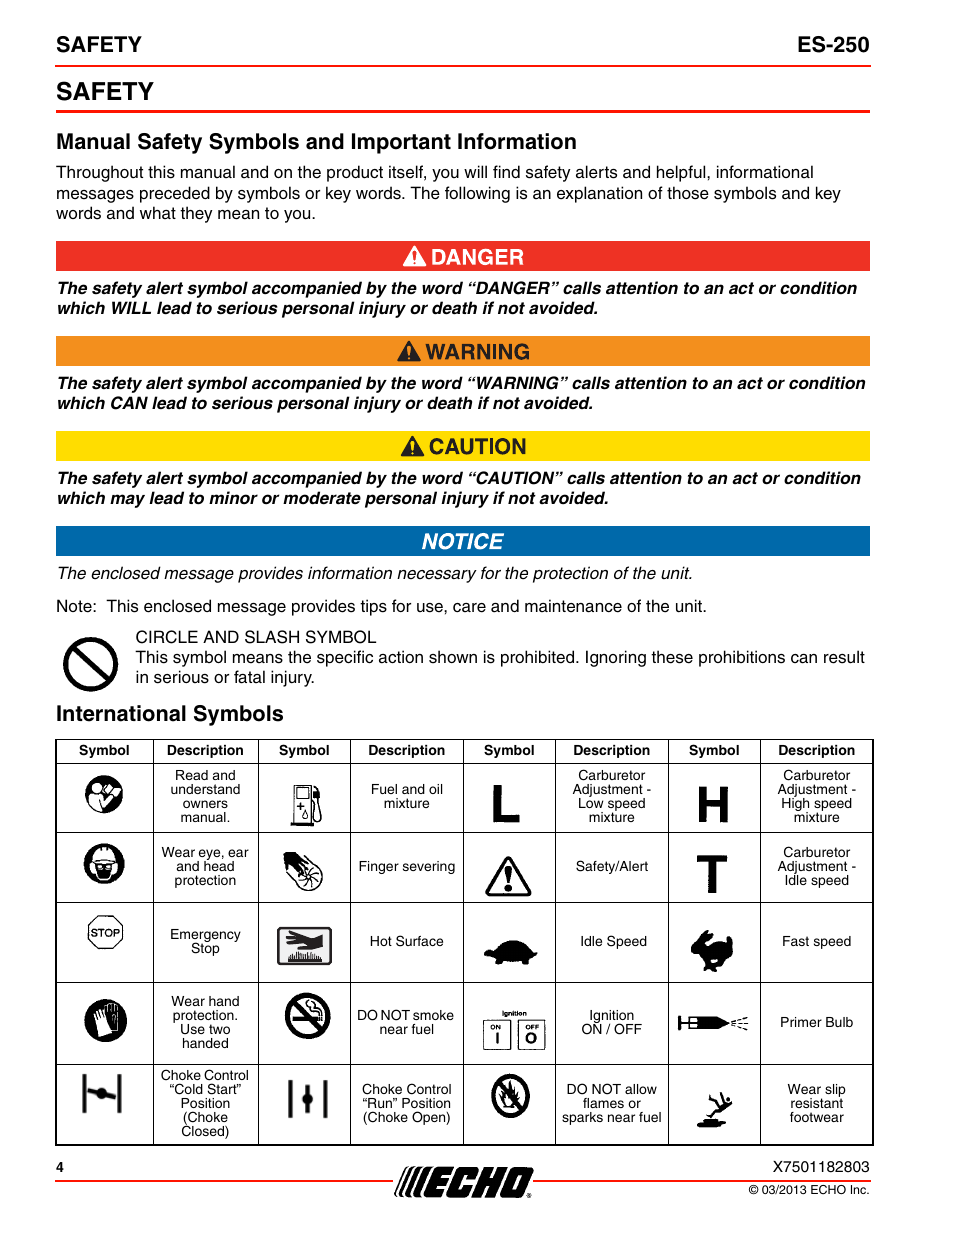 Awesome choke symbol images electrical system block diagram safety manual safety symbols and important information biocorpaavc Image collections